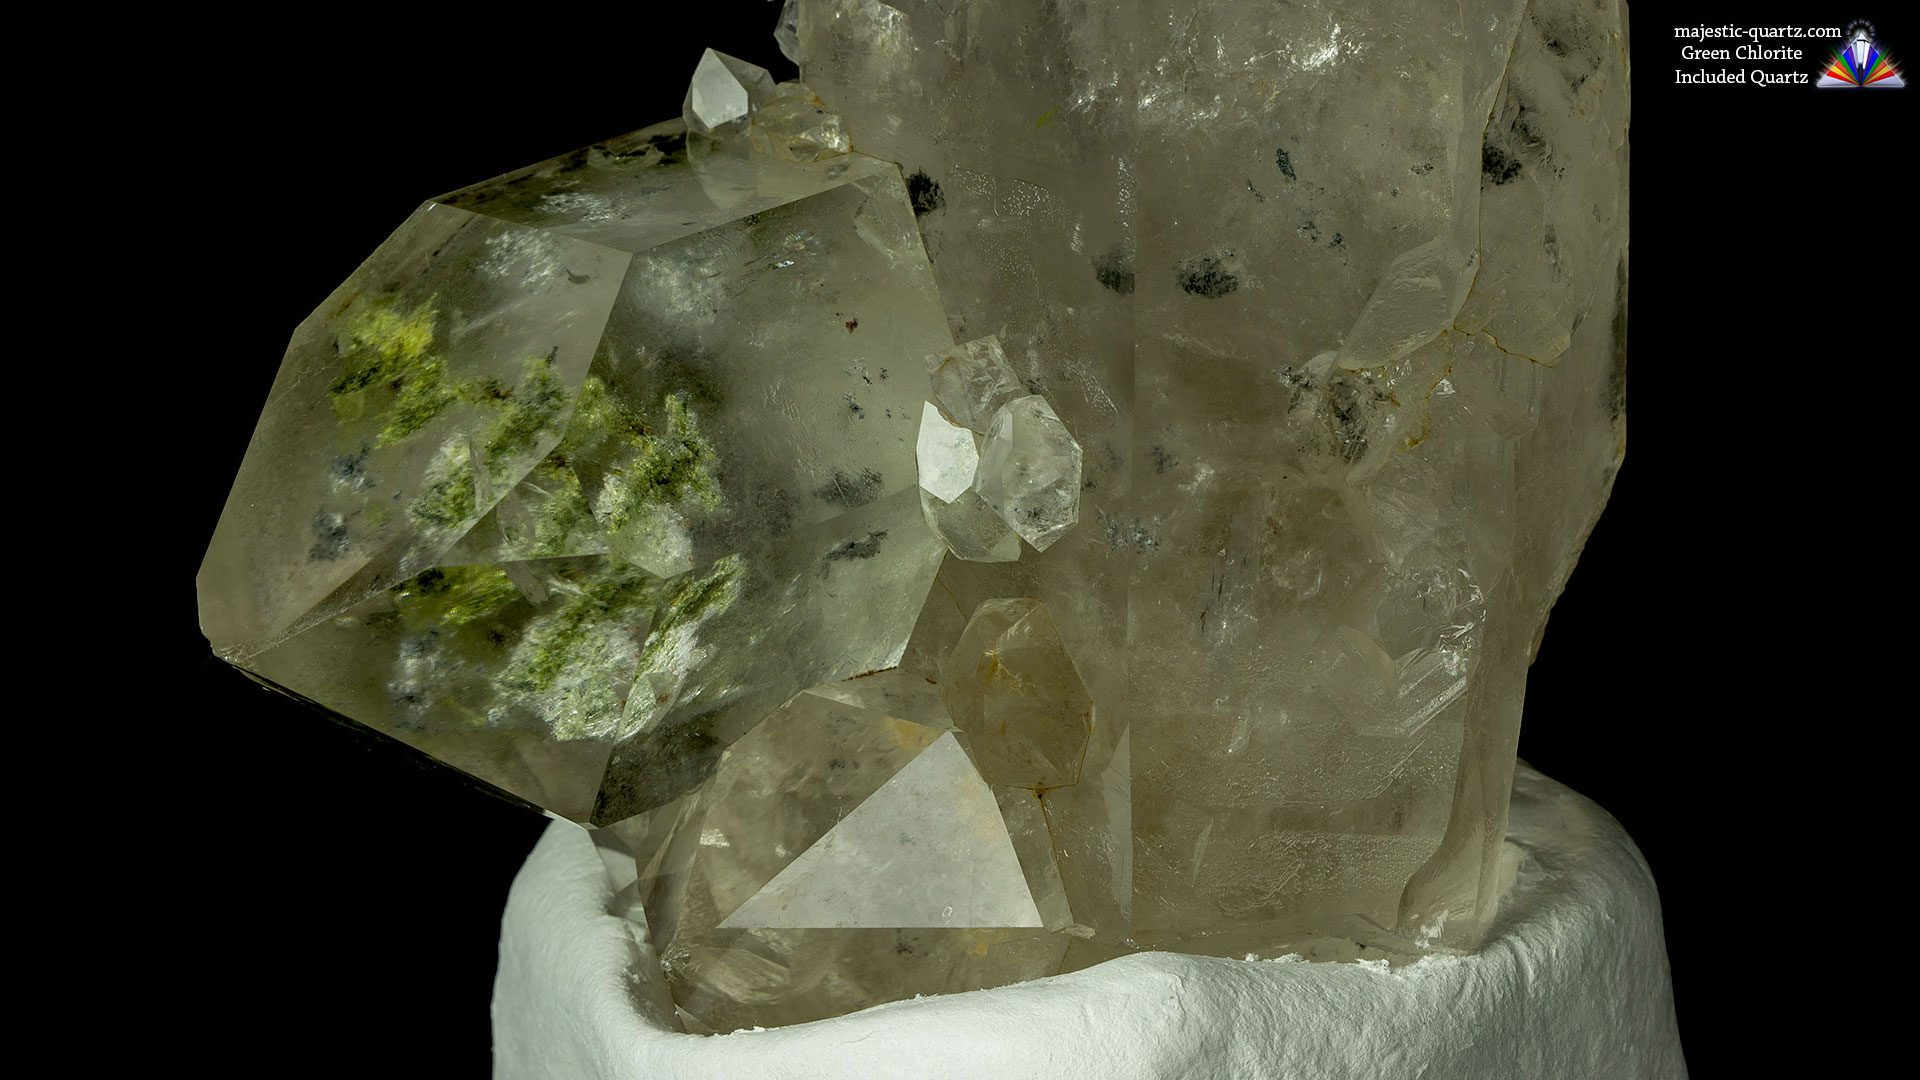 Green Chlorite Included Quartz Crystal - Photograph by Anthony Bradford